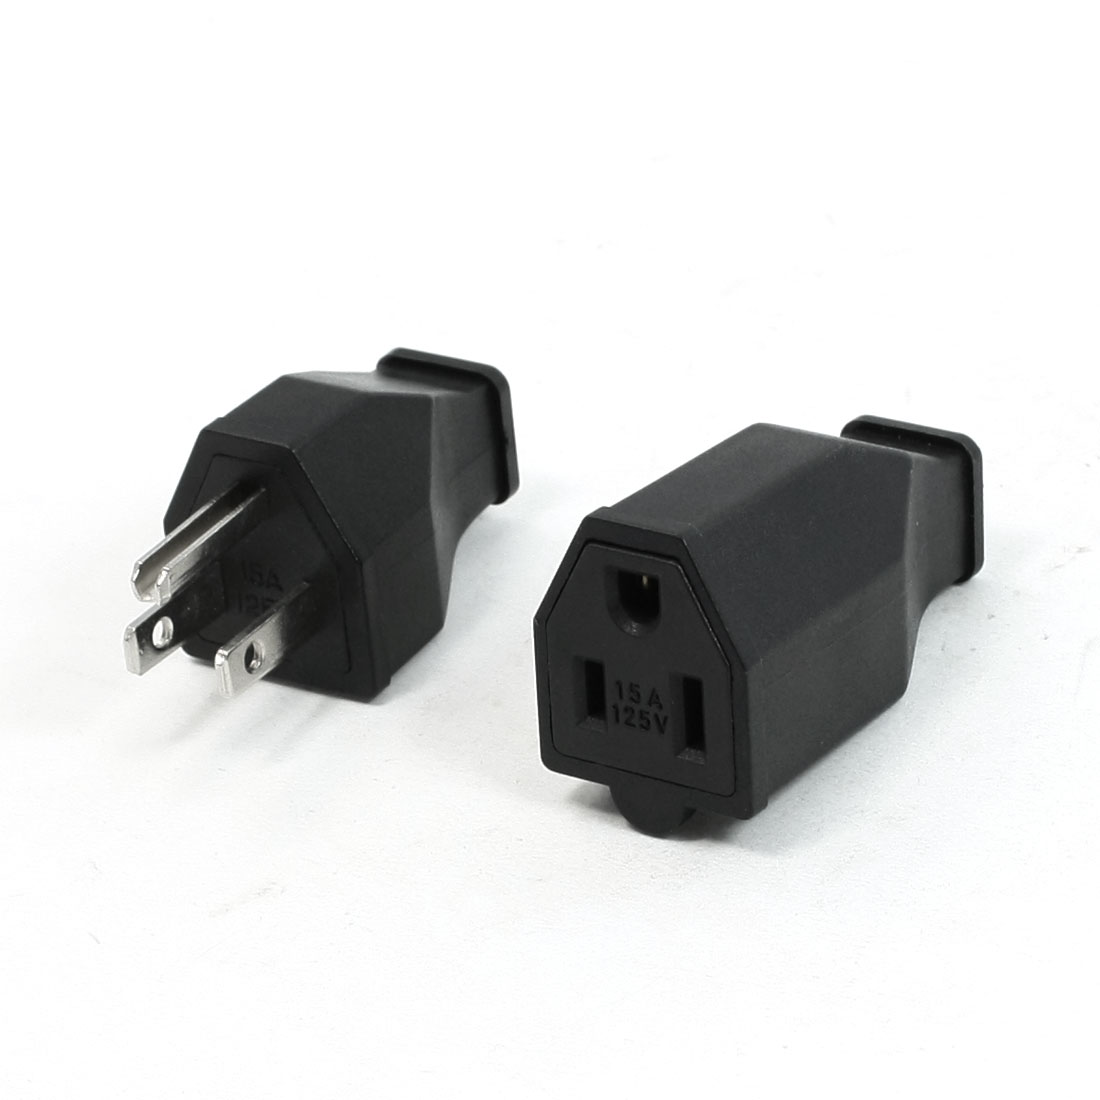 Pair 3 Terminals US Plug Insulating Shell Cable Connecting Head 15A 125V w Socket